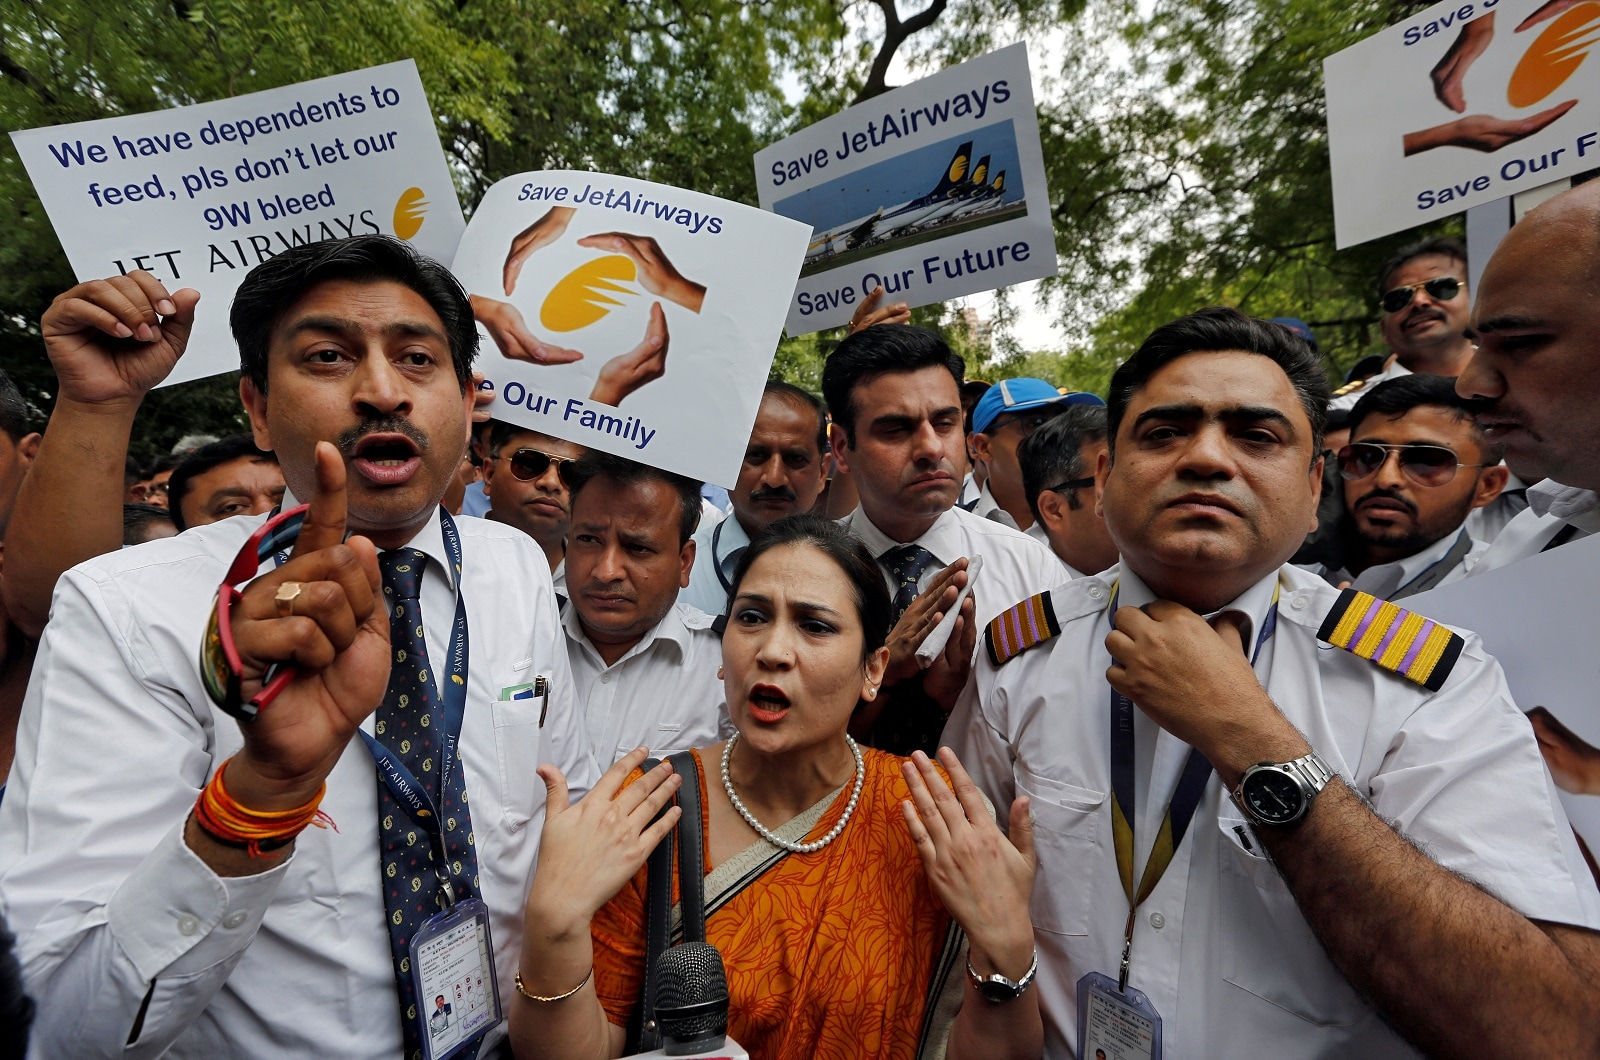 Jet Airways employees and their family members attend a protest demanding to